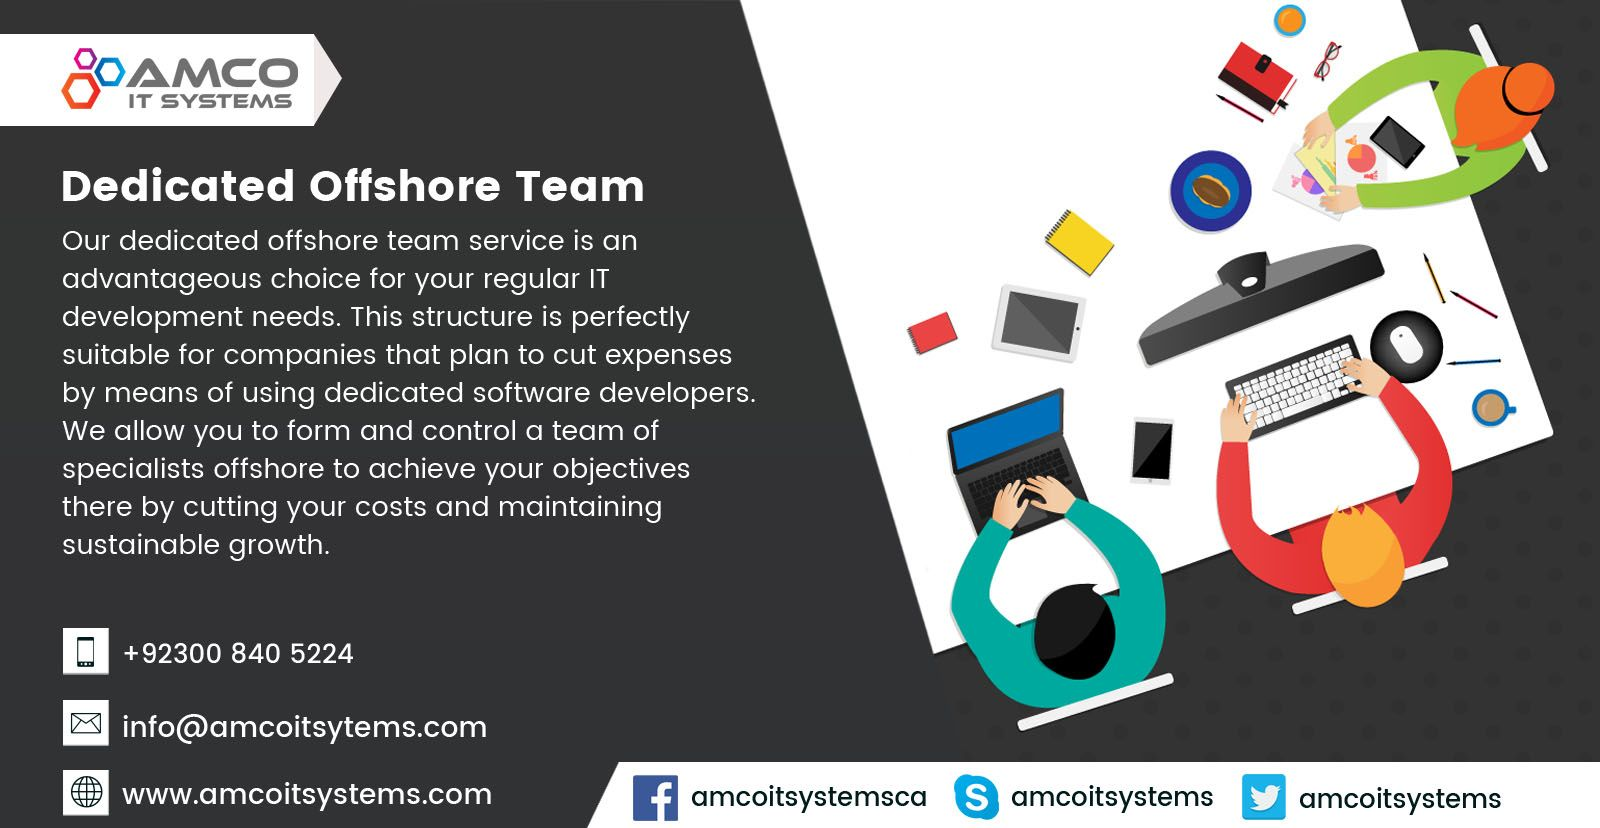 Amco IT Systems provides you dedicated teams that enables